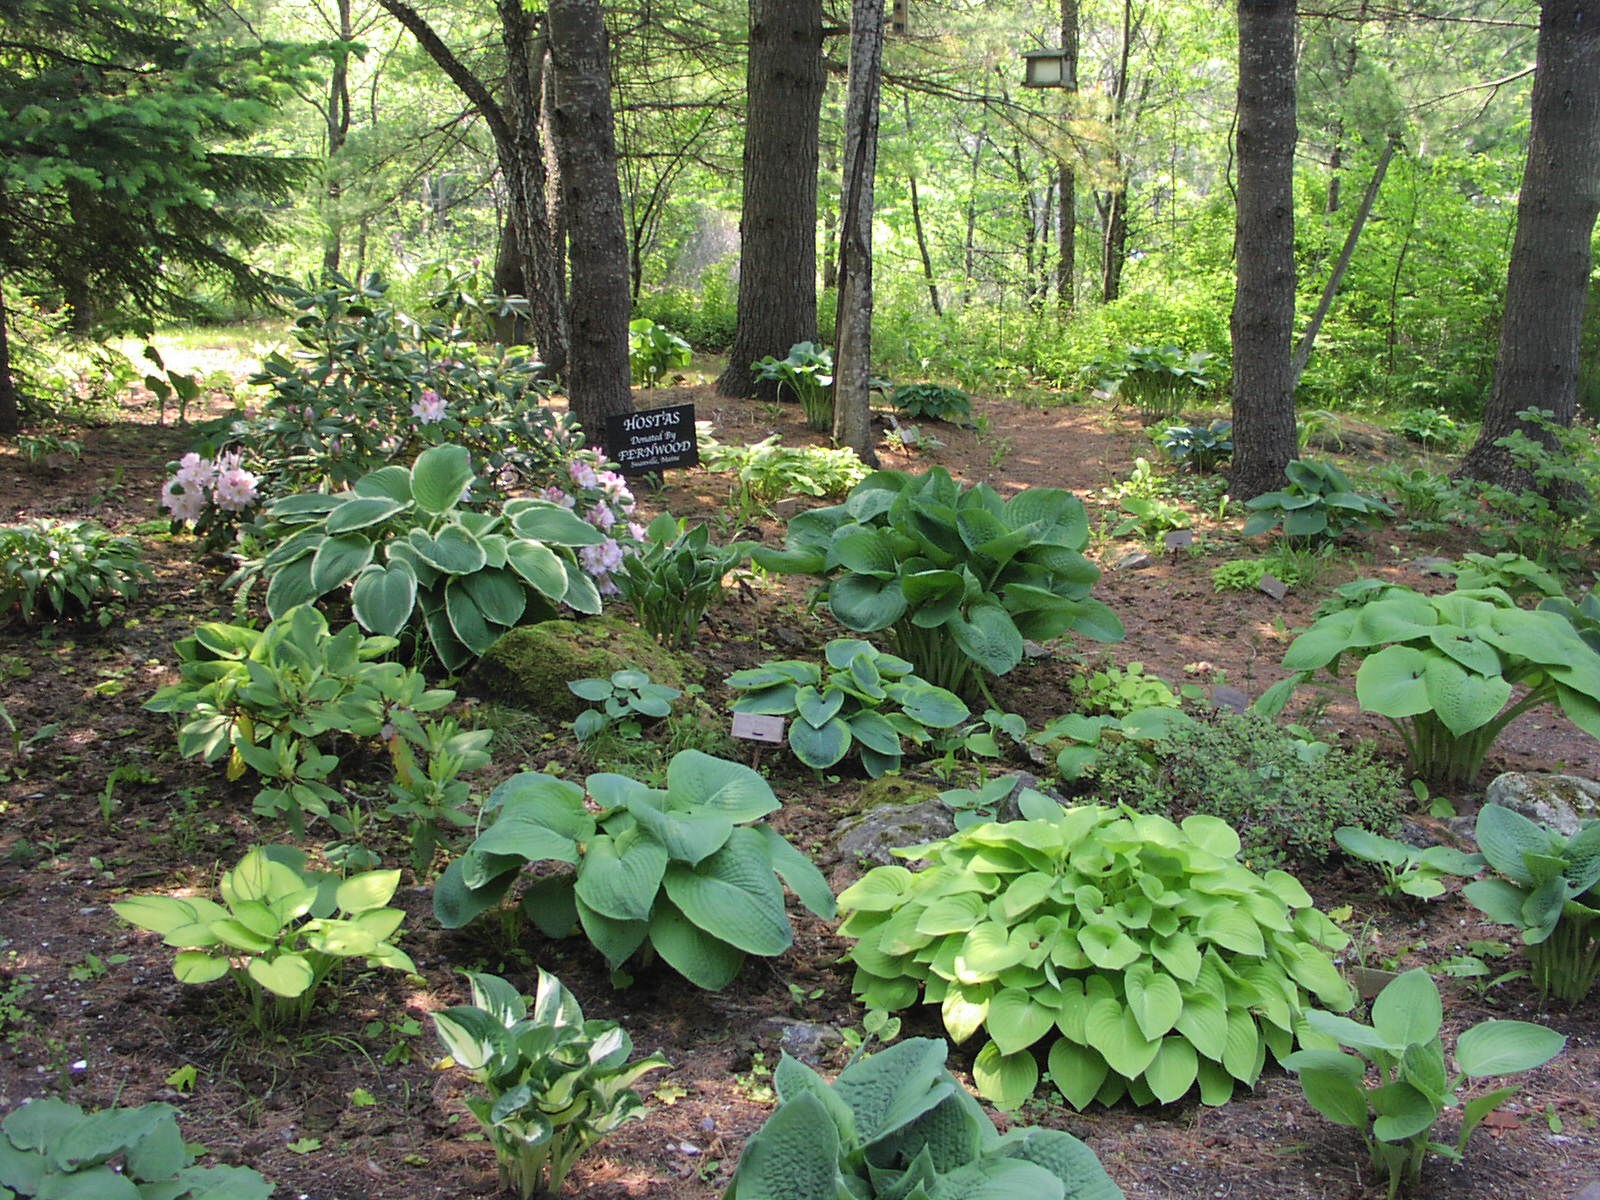 Gardens Merryspring Nature Center